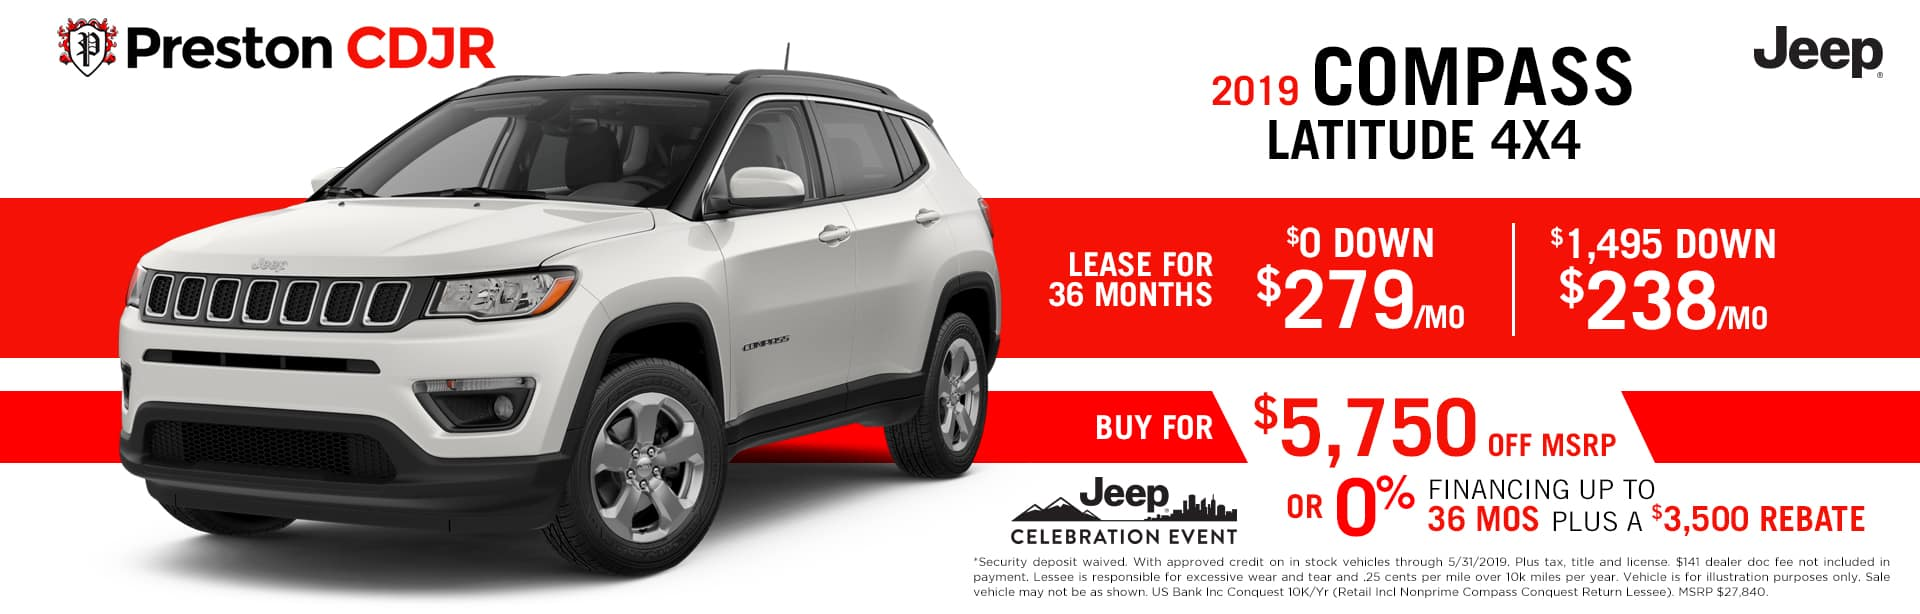 May special for the 2019 Jeep Compass